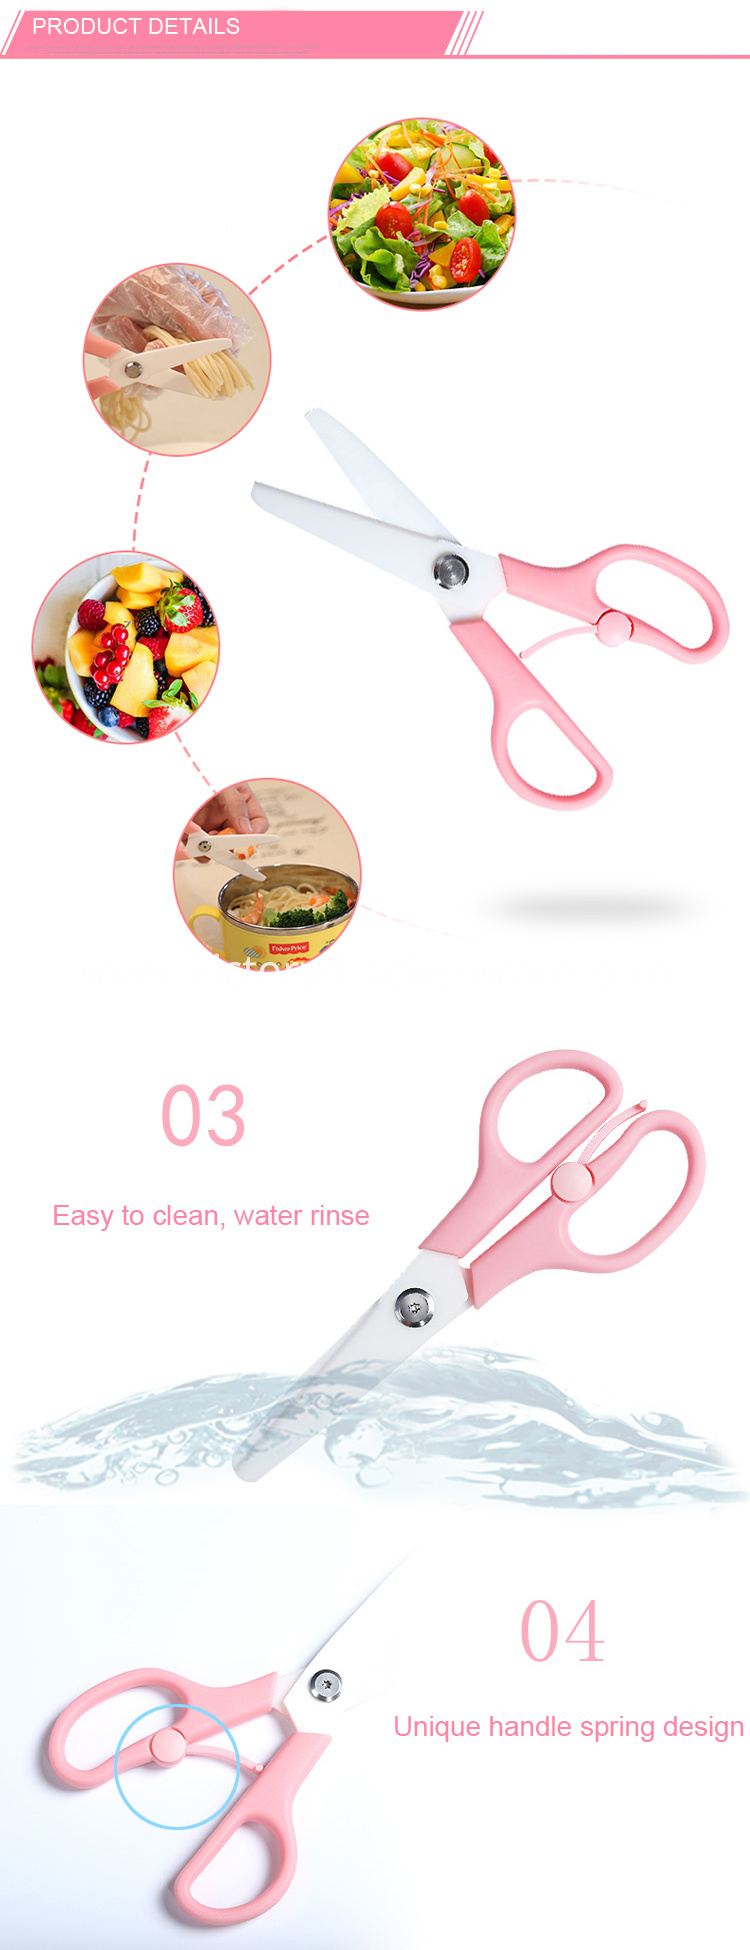 Baby food safety scissors